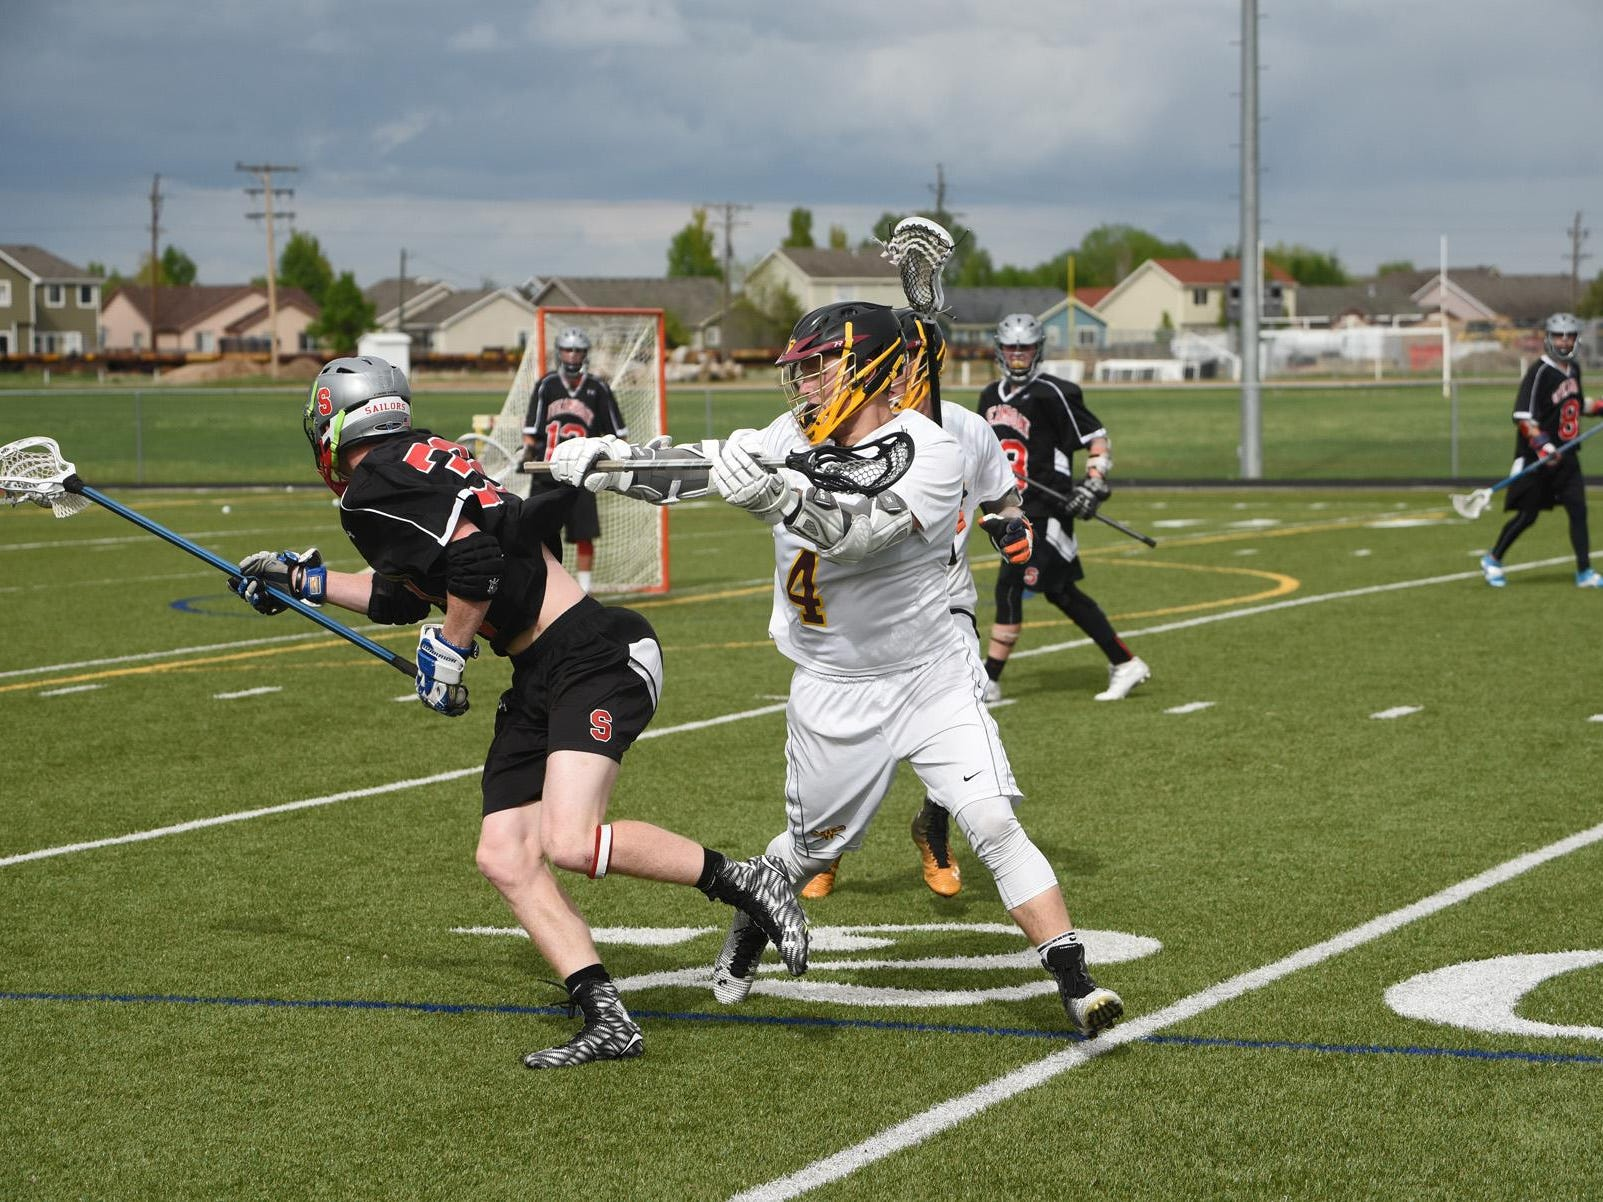 The Windsor lacrosse team, ranked No. 2 in the state, will host No. 1 Dawson at 7 p.m. Friday.